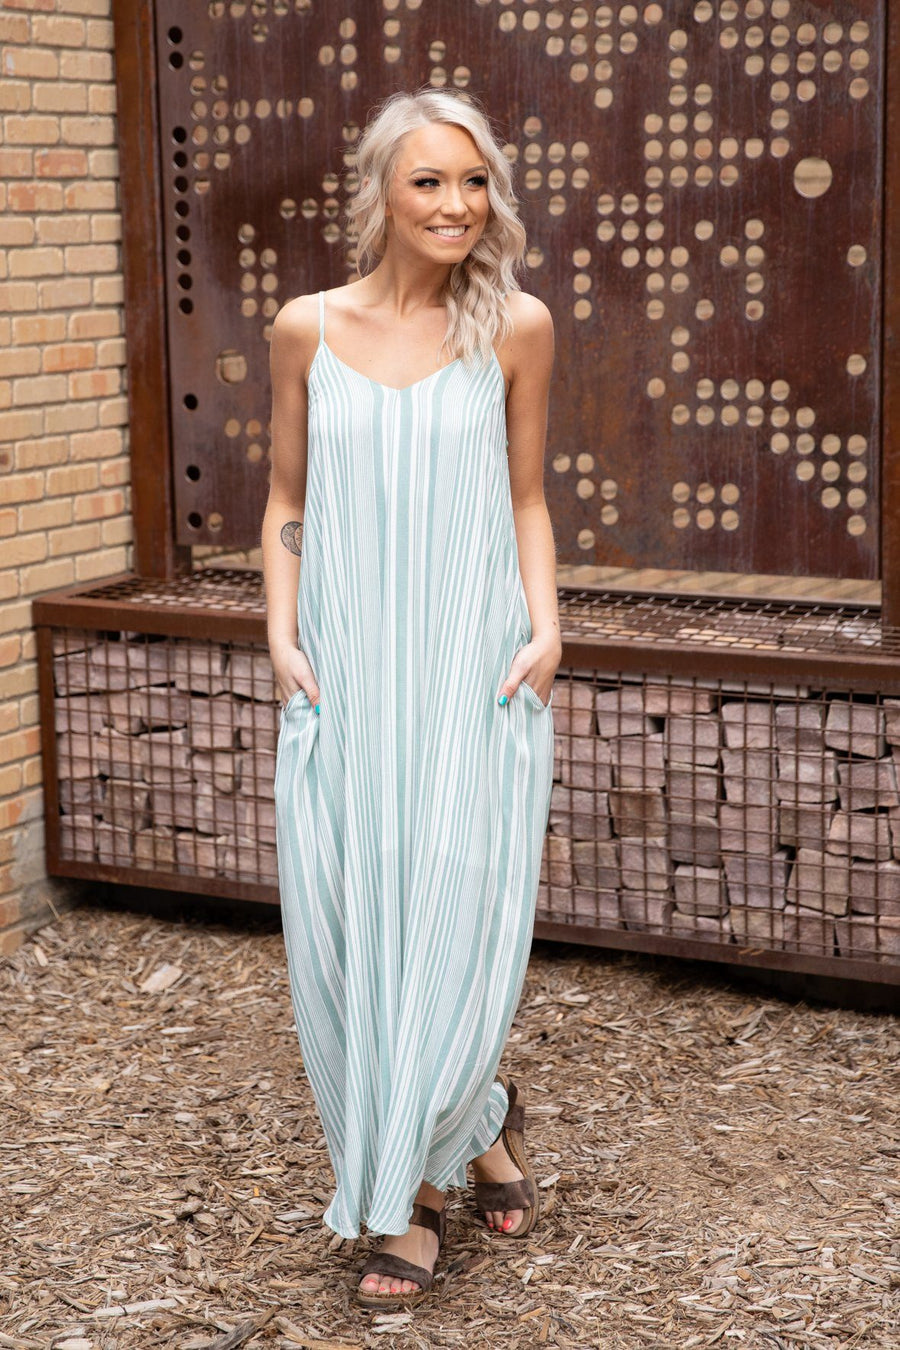 7d672c45a58 More Than Just You Sleeveless Striped Boho Maxi Dress in Seafoam White